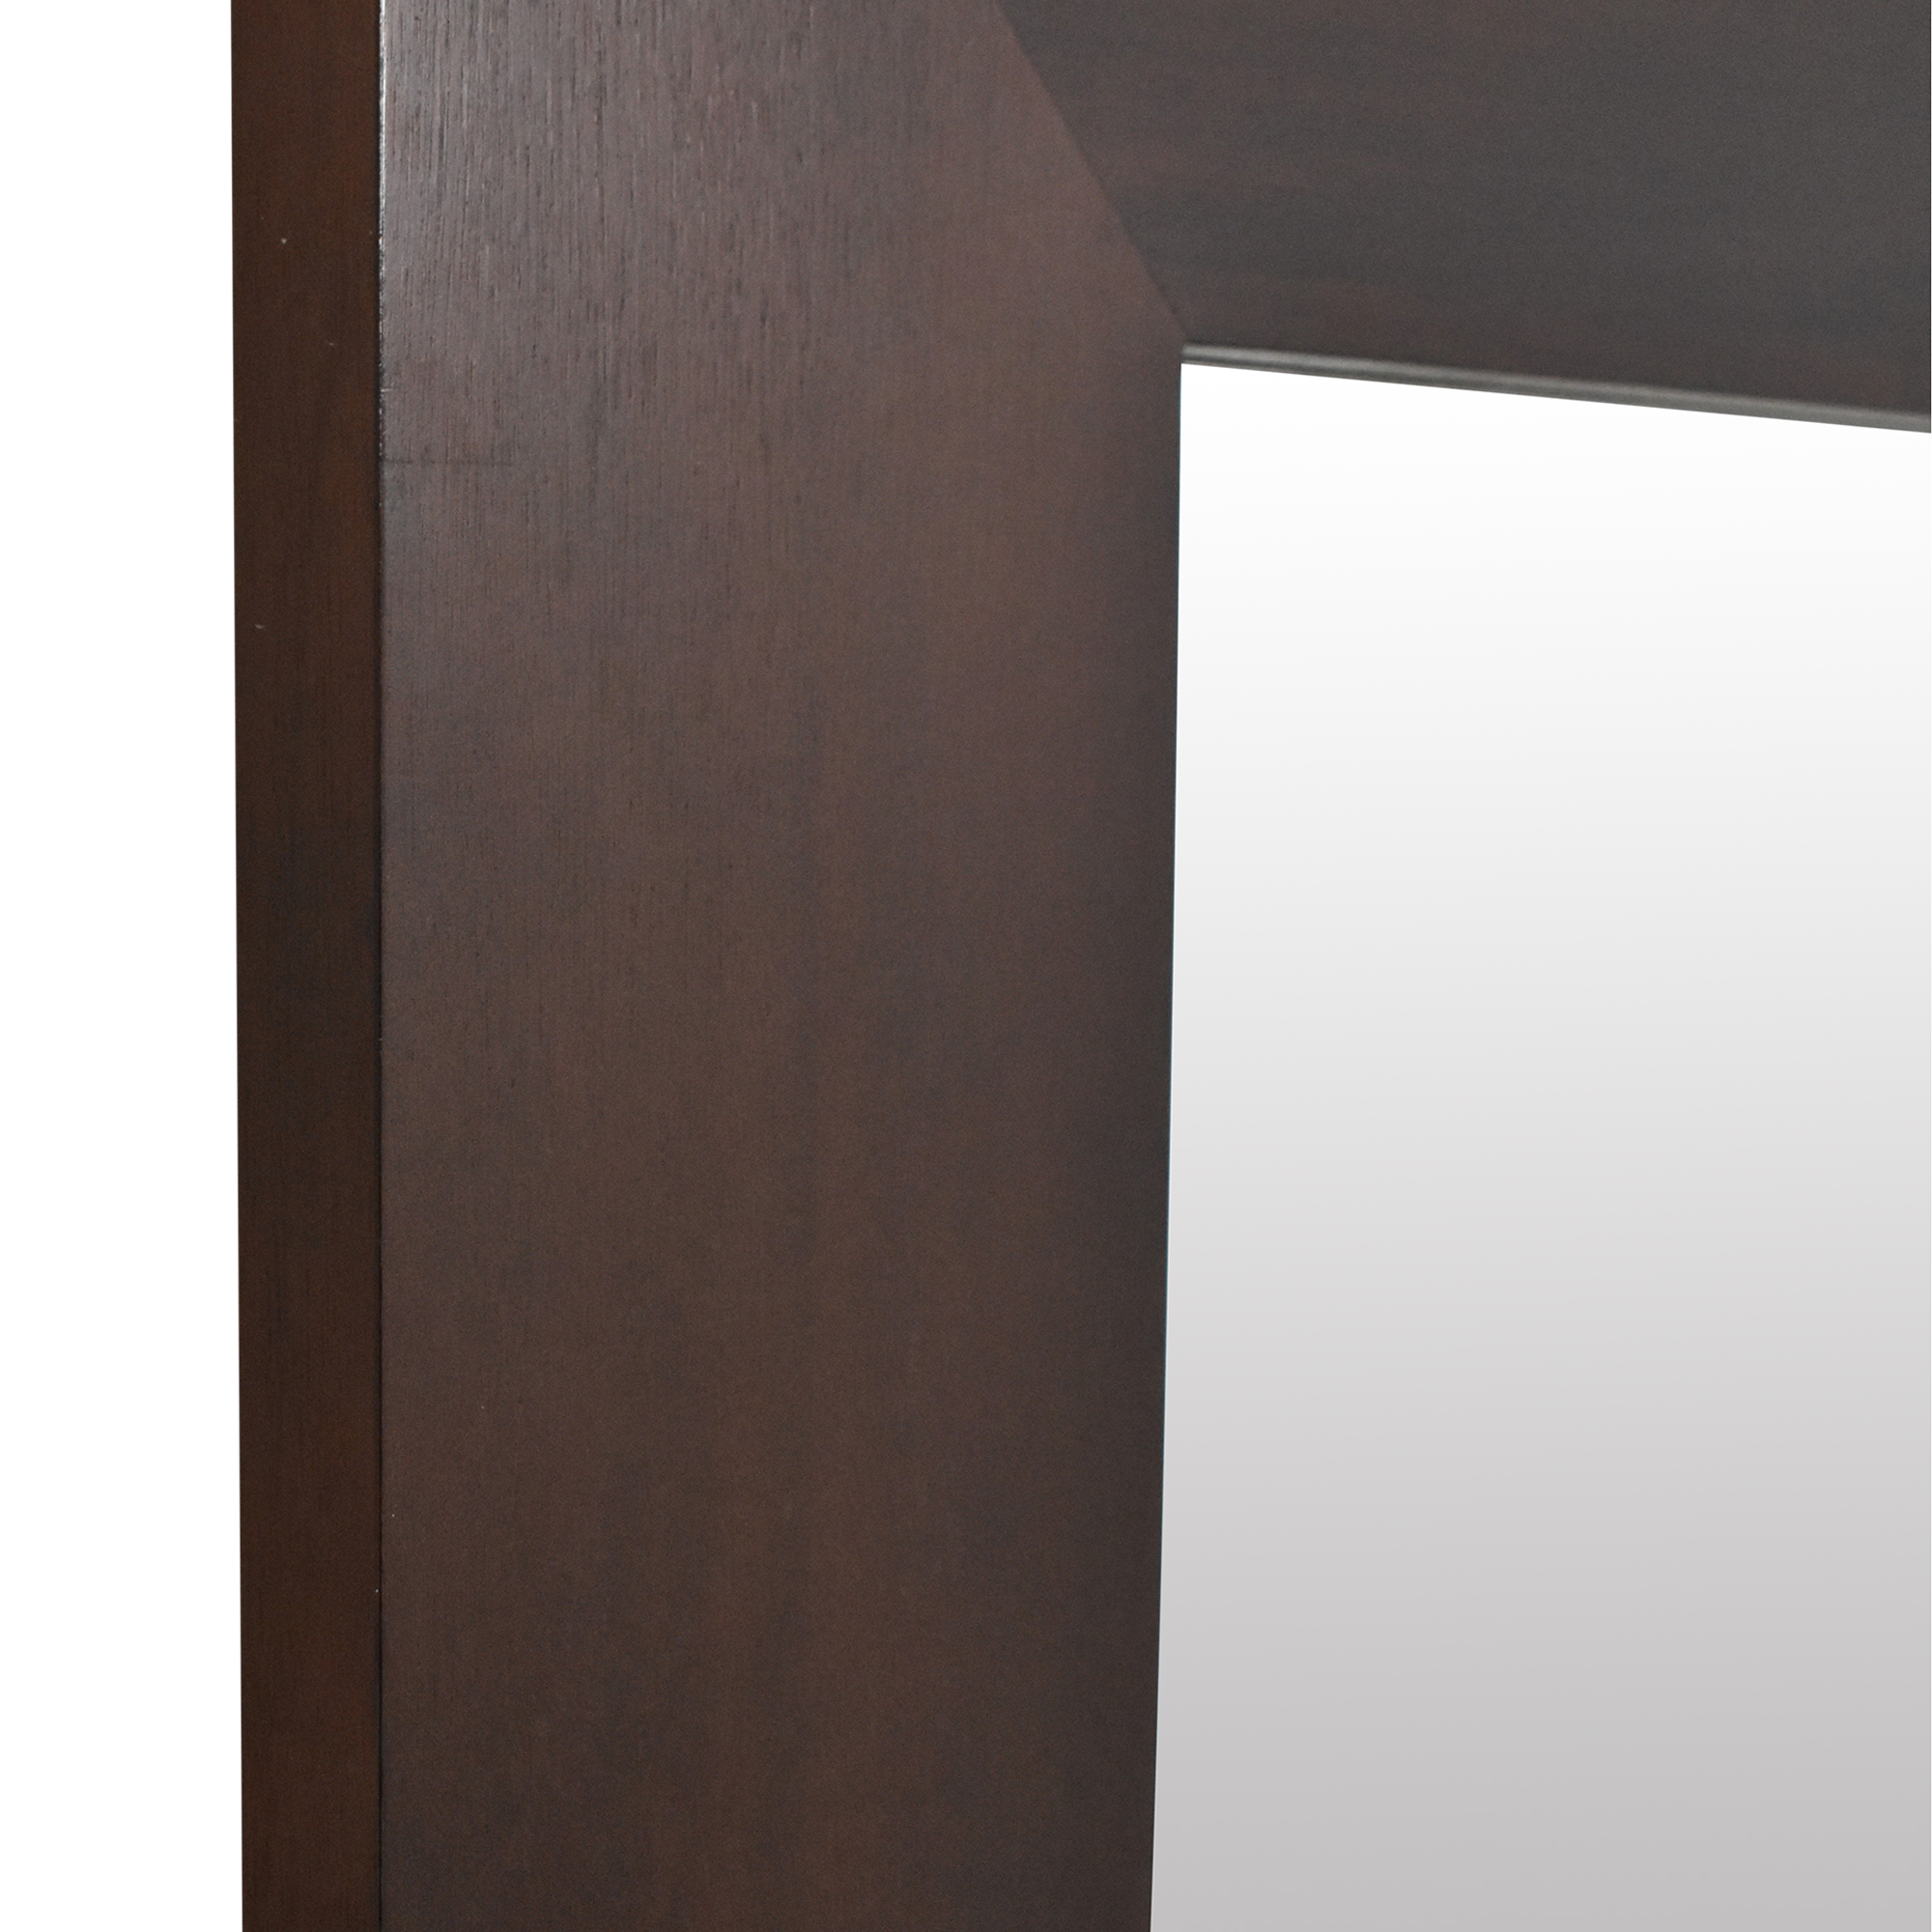 Square Framed Wall Mirror used